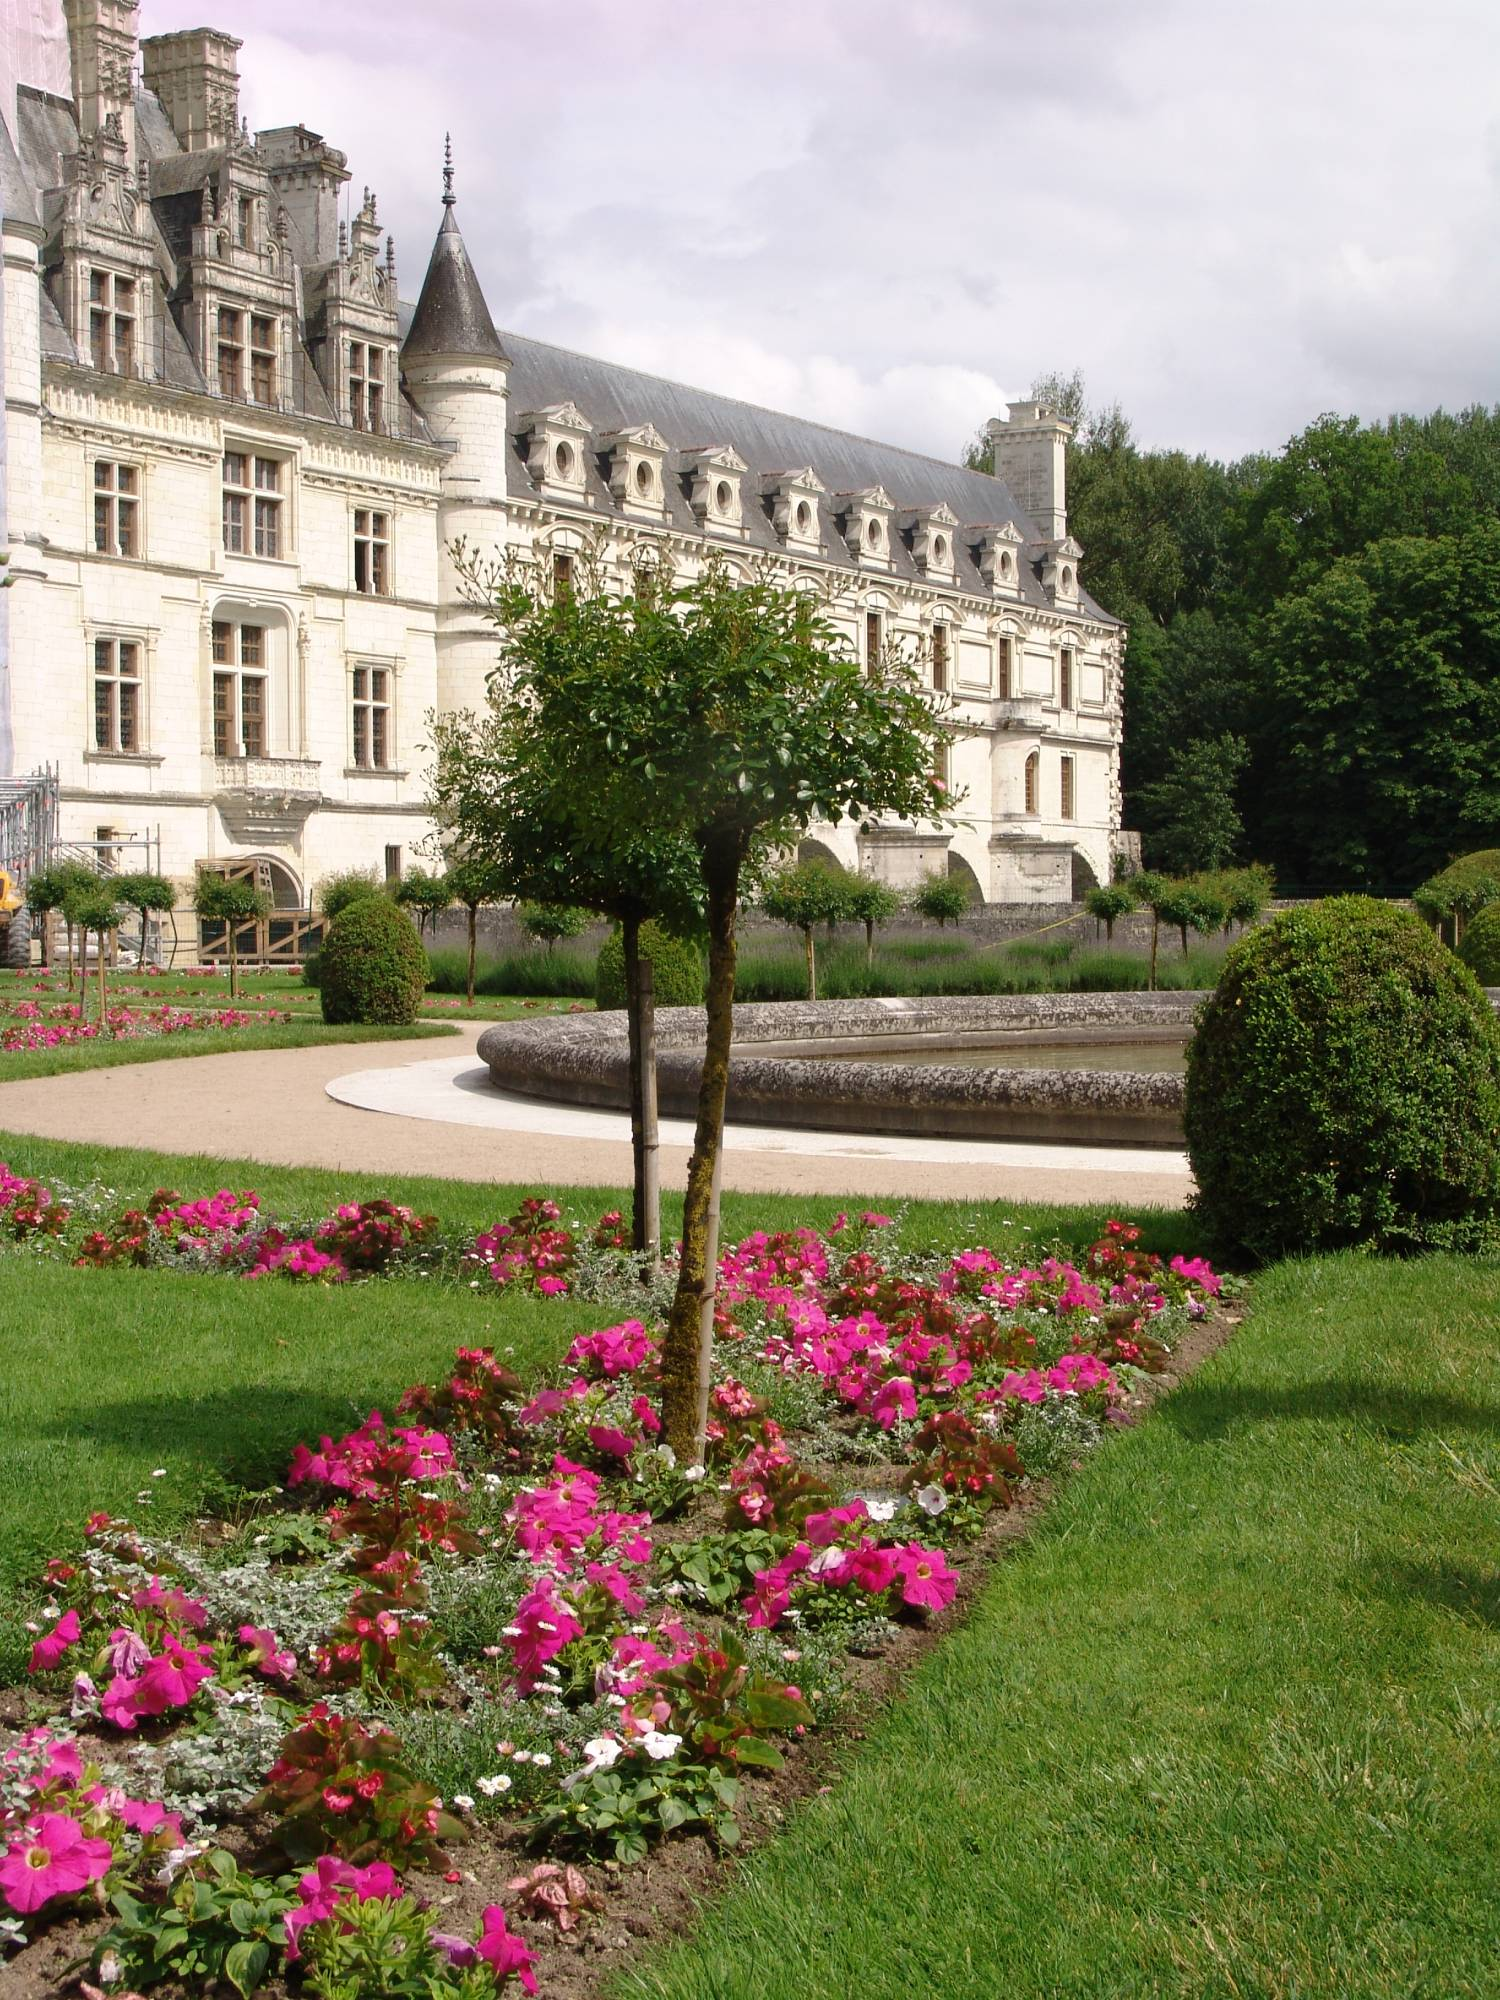 Explore the castles of the Loire Valley |PassPorter.com